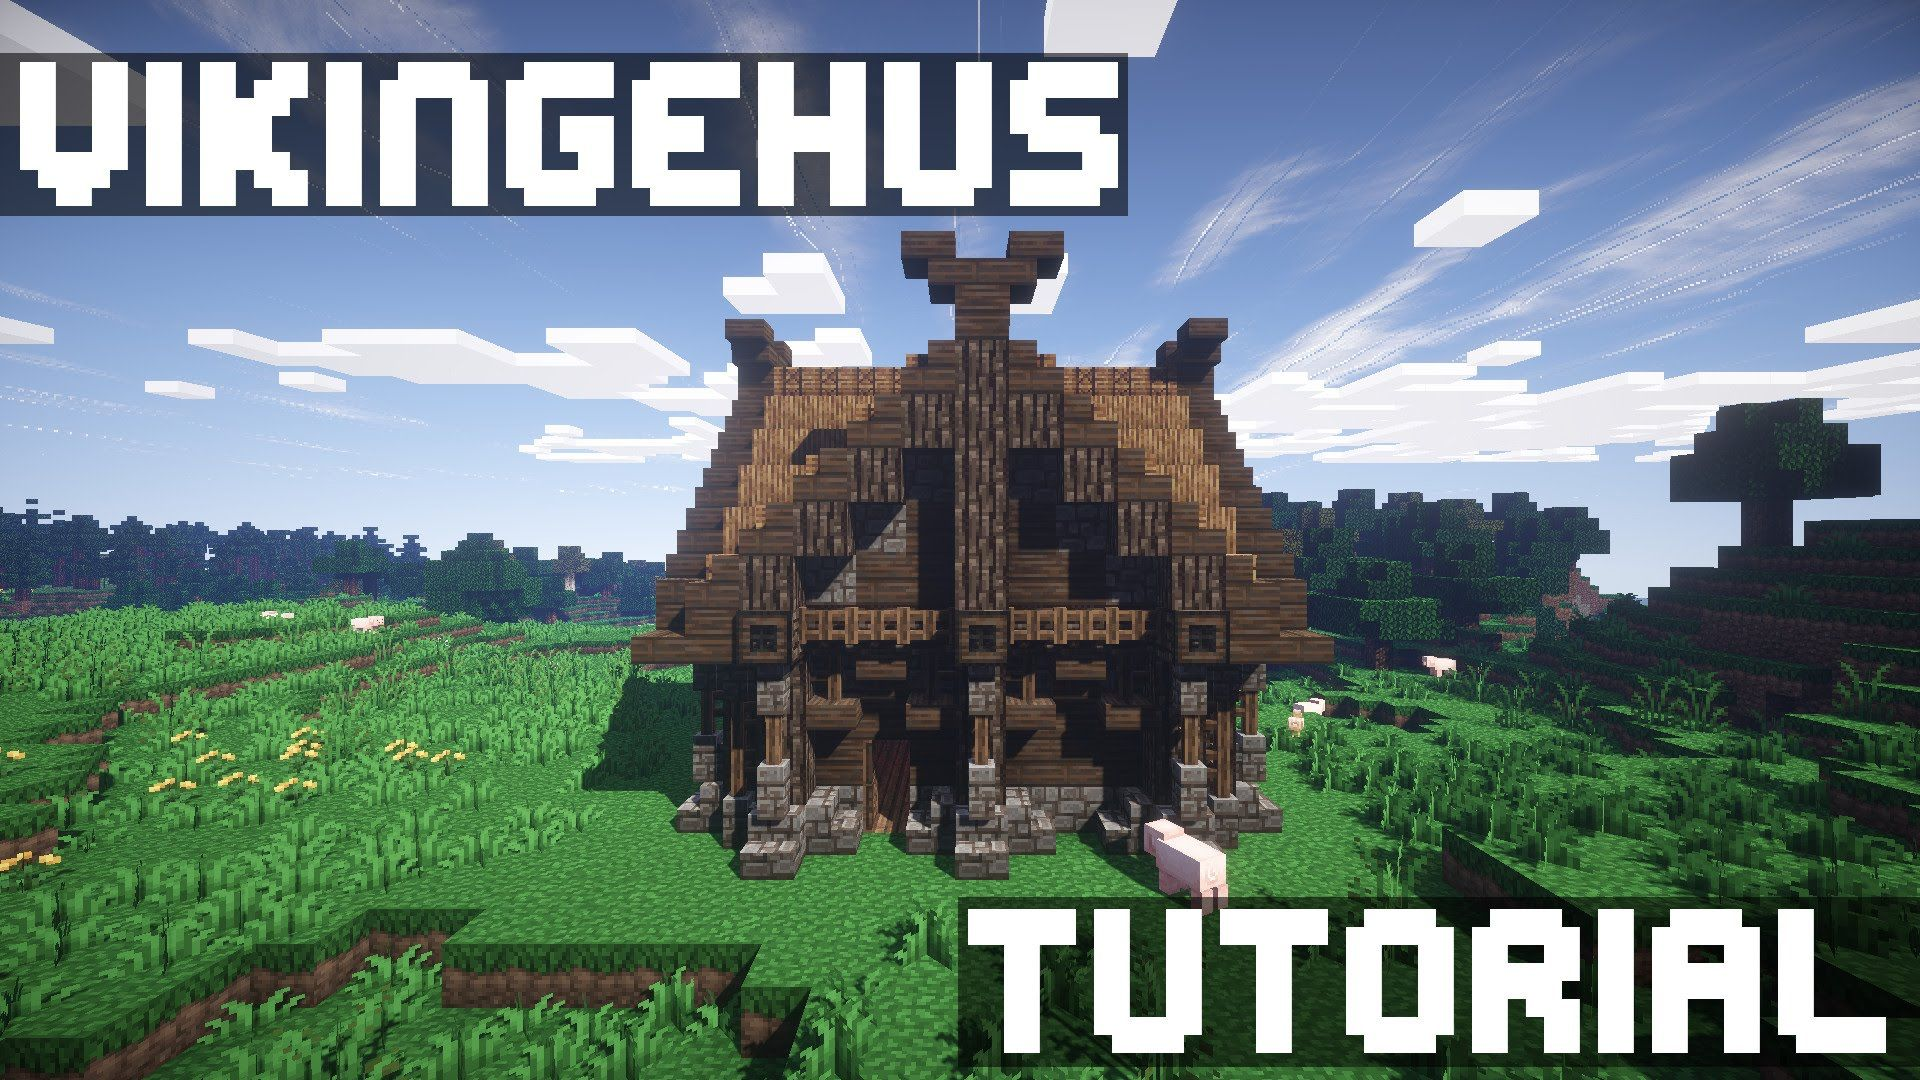 Danish Minecraft Viking House V Tutorial Minecraft - Minecraft grobe hauser download